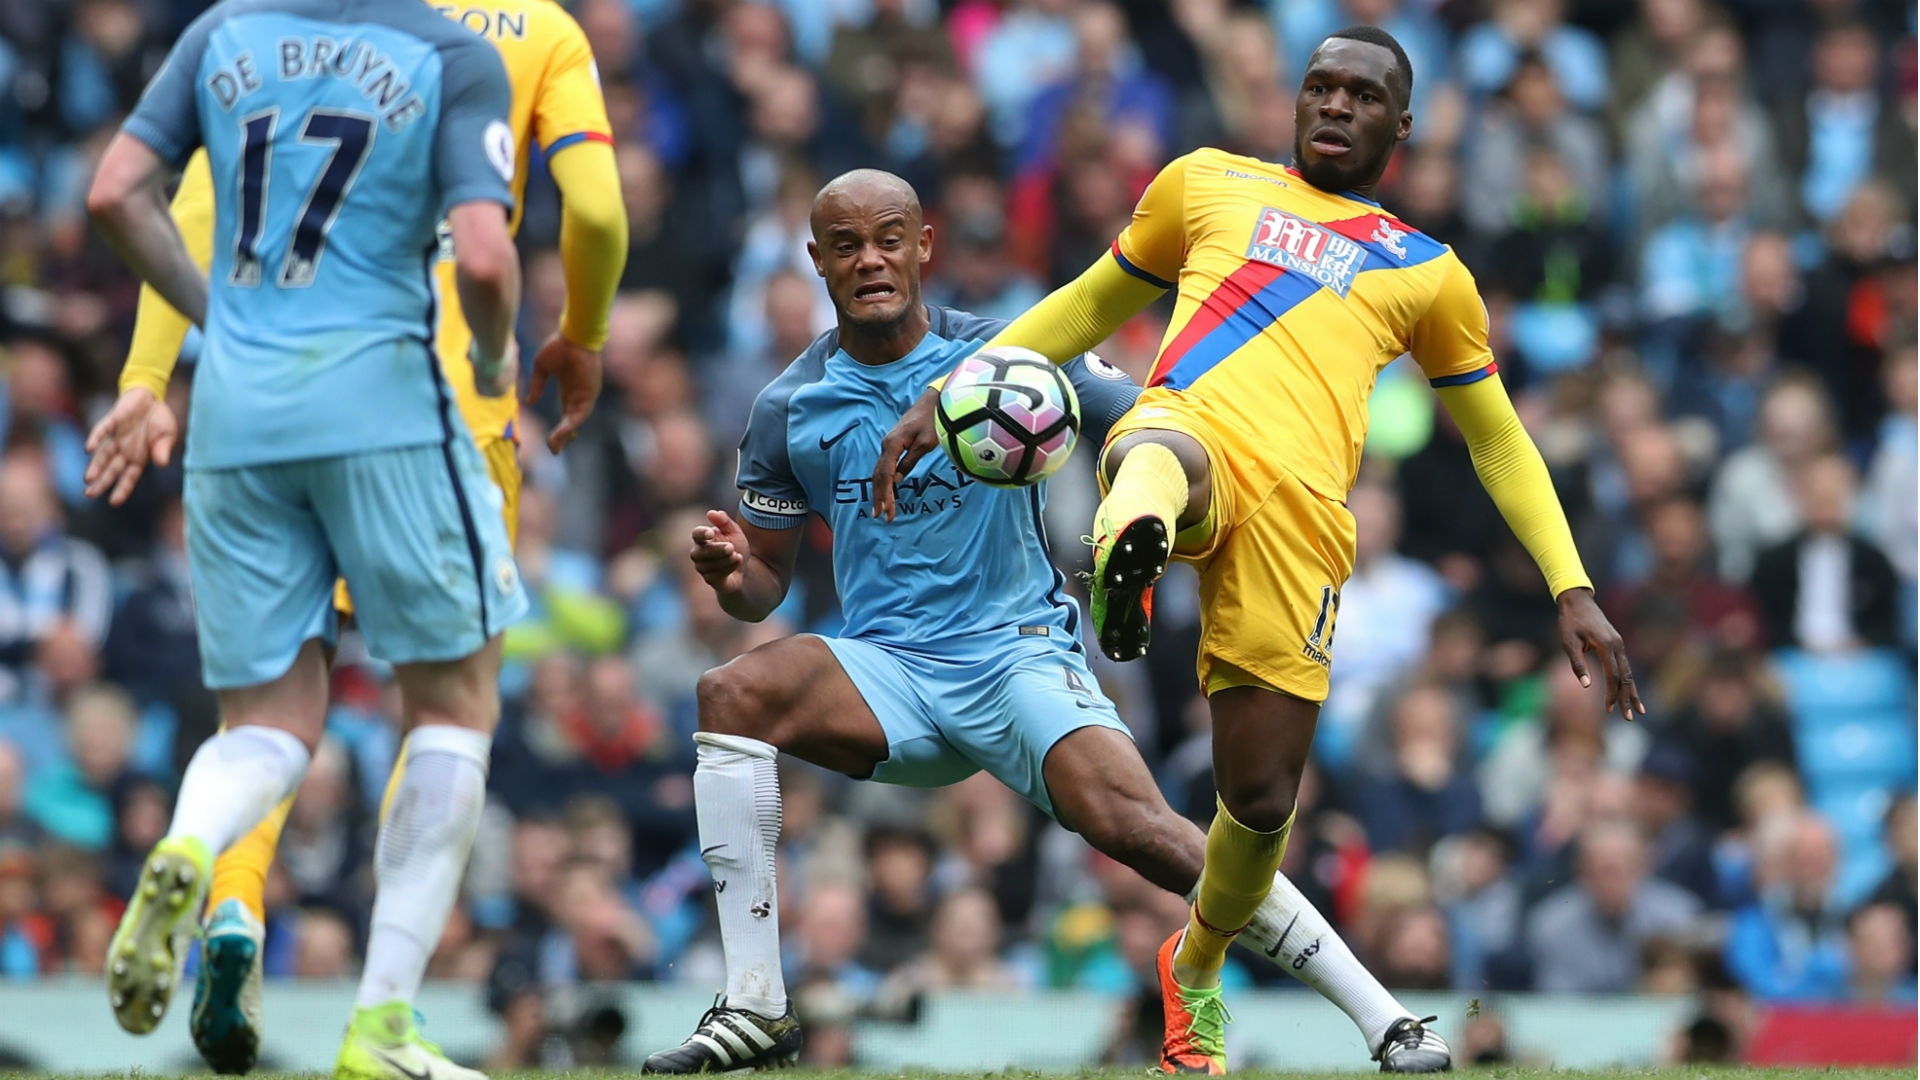 Vincent Kompany has been unavailable for Manchester City for most of the season